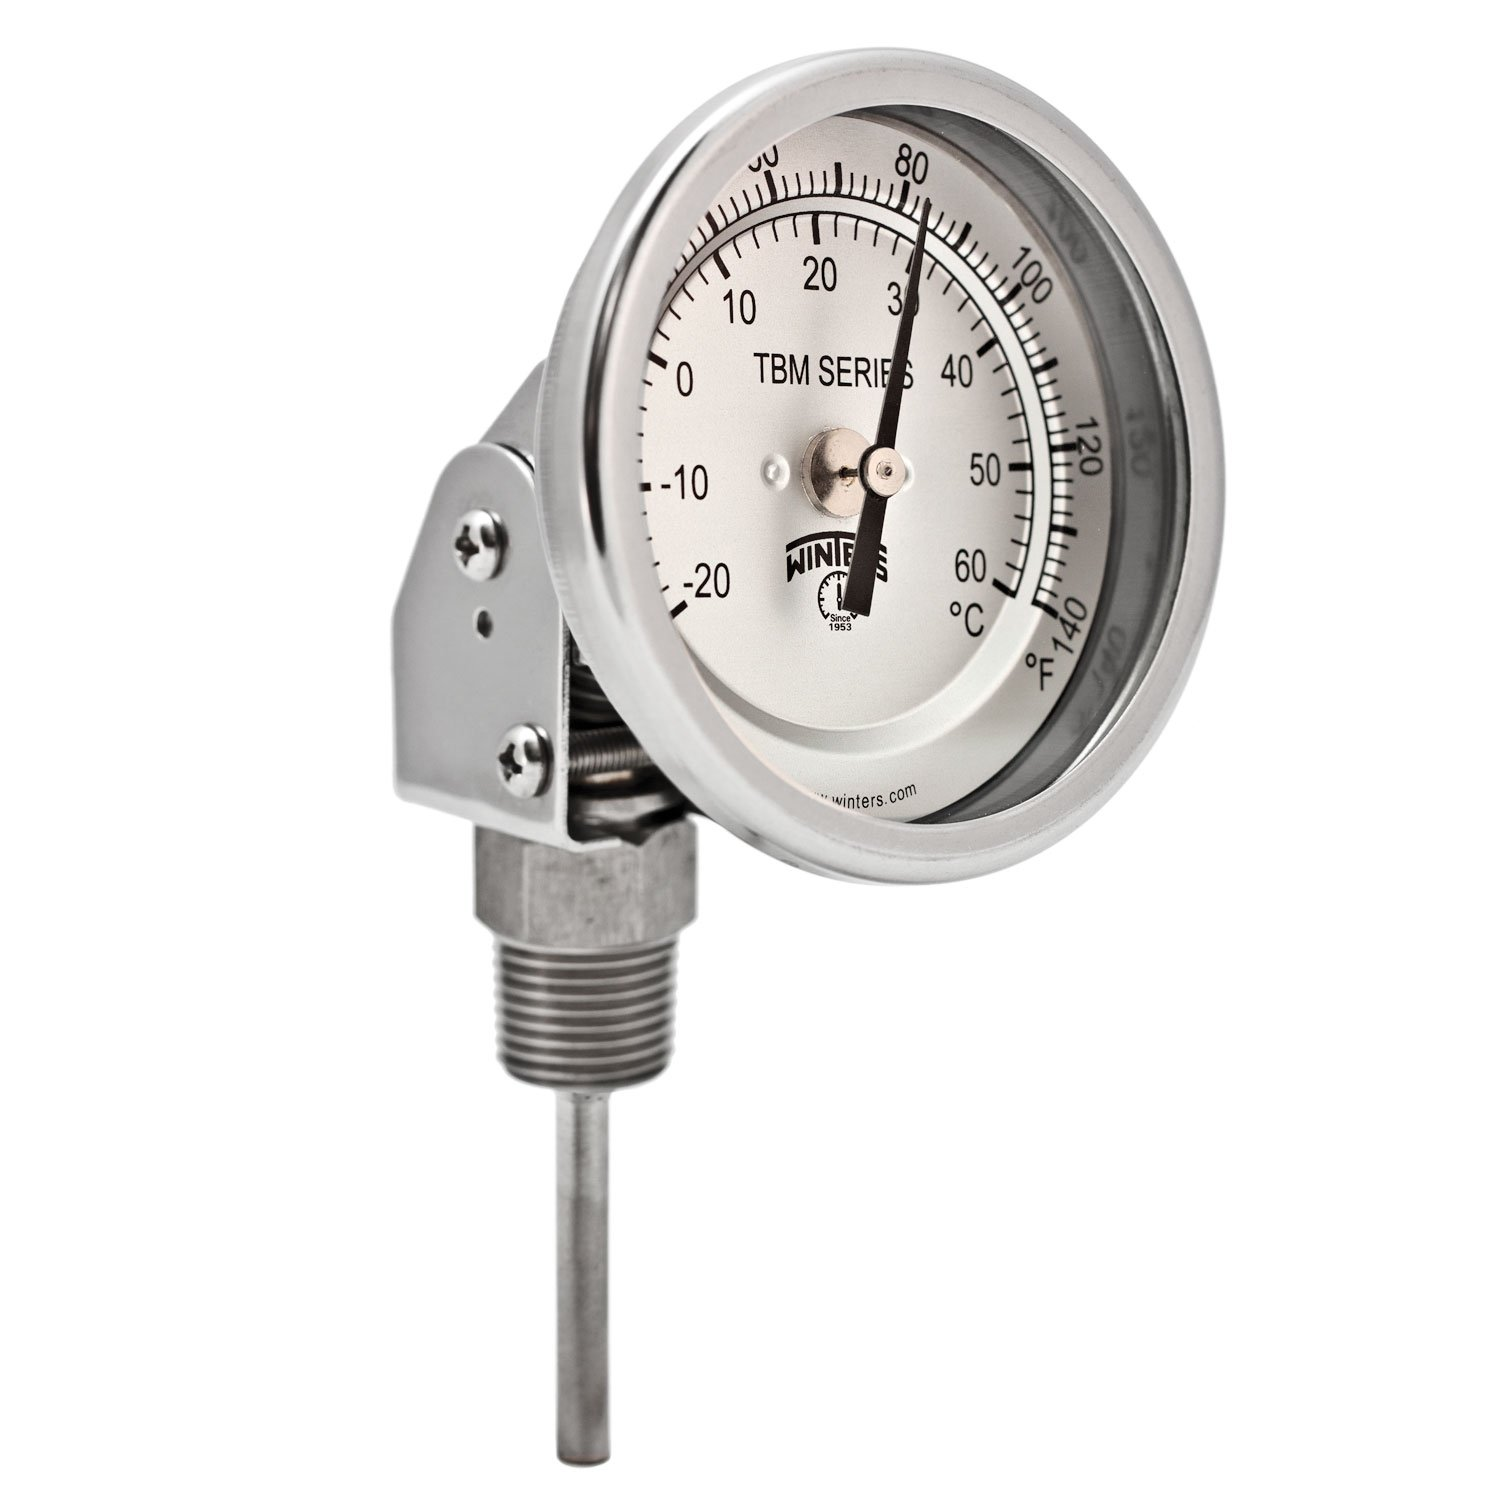 Winters TBM Series Stainless Steel 304 Dual Scale Bi-Metal Thermometer, 2-1/2'' Stem, 1/2'' NPT Adjustable Angle Connection, 3'' Dial, 0-140 F/C Range